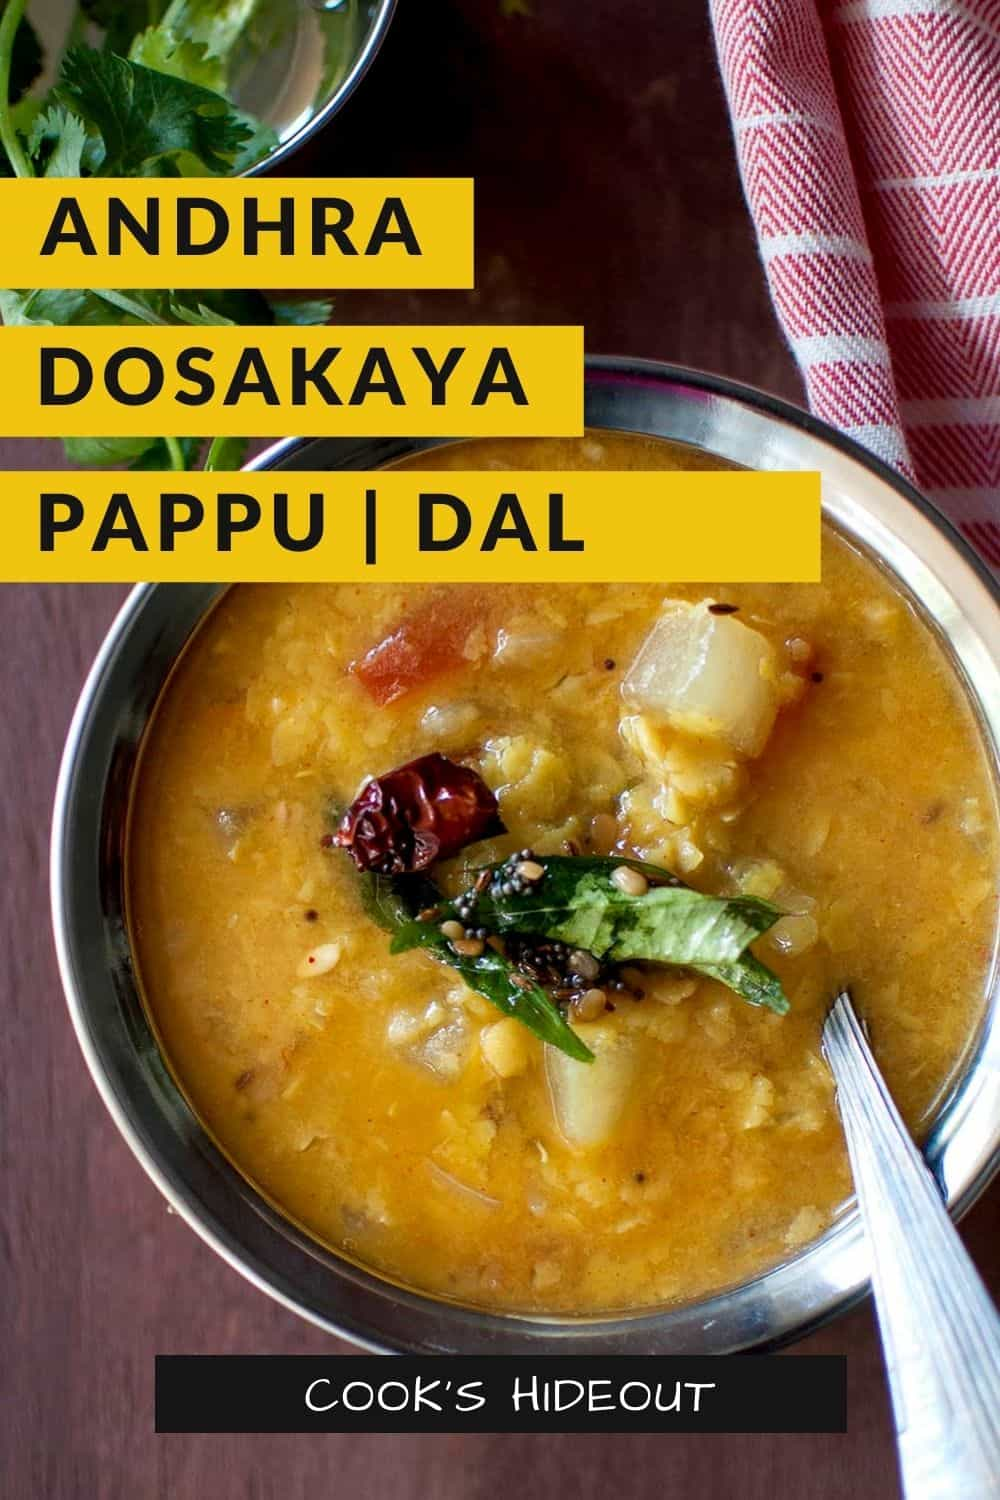 Andhra style dosakaya pappu in a round steel bowl